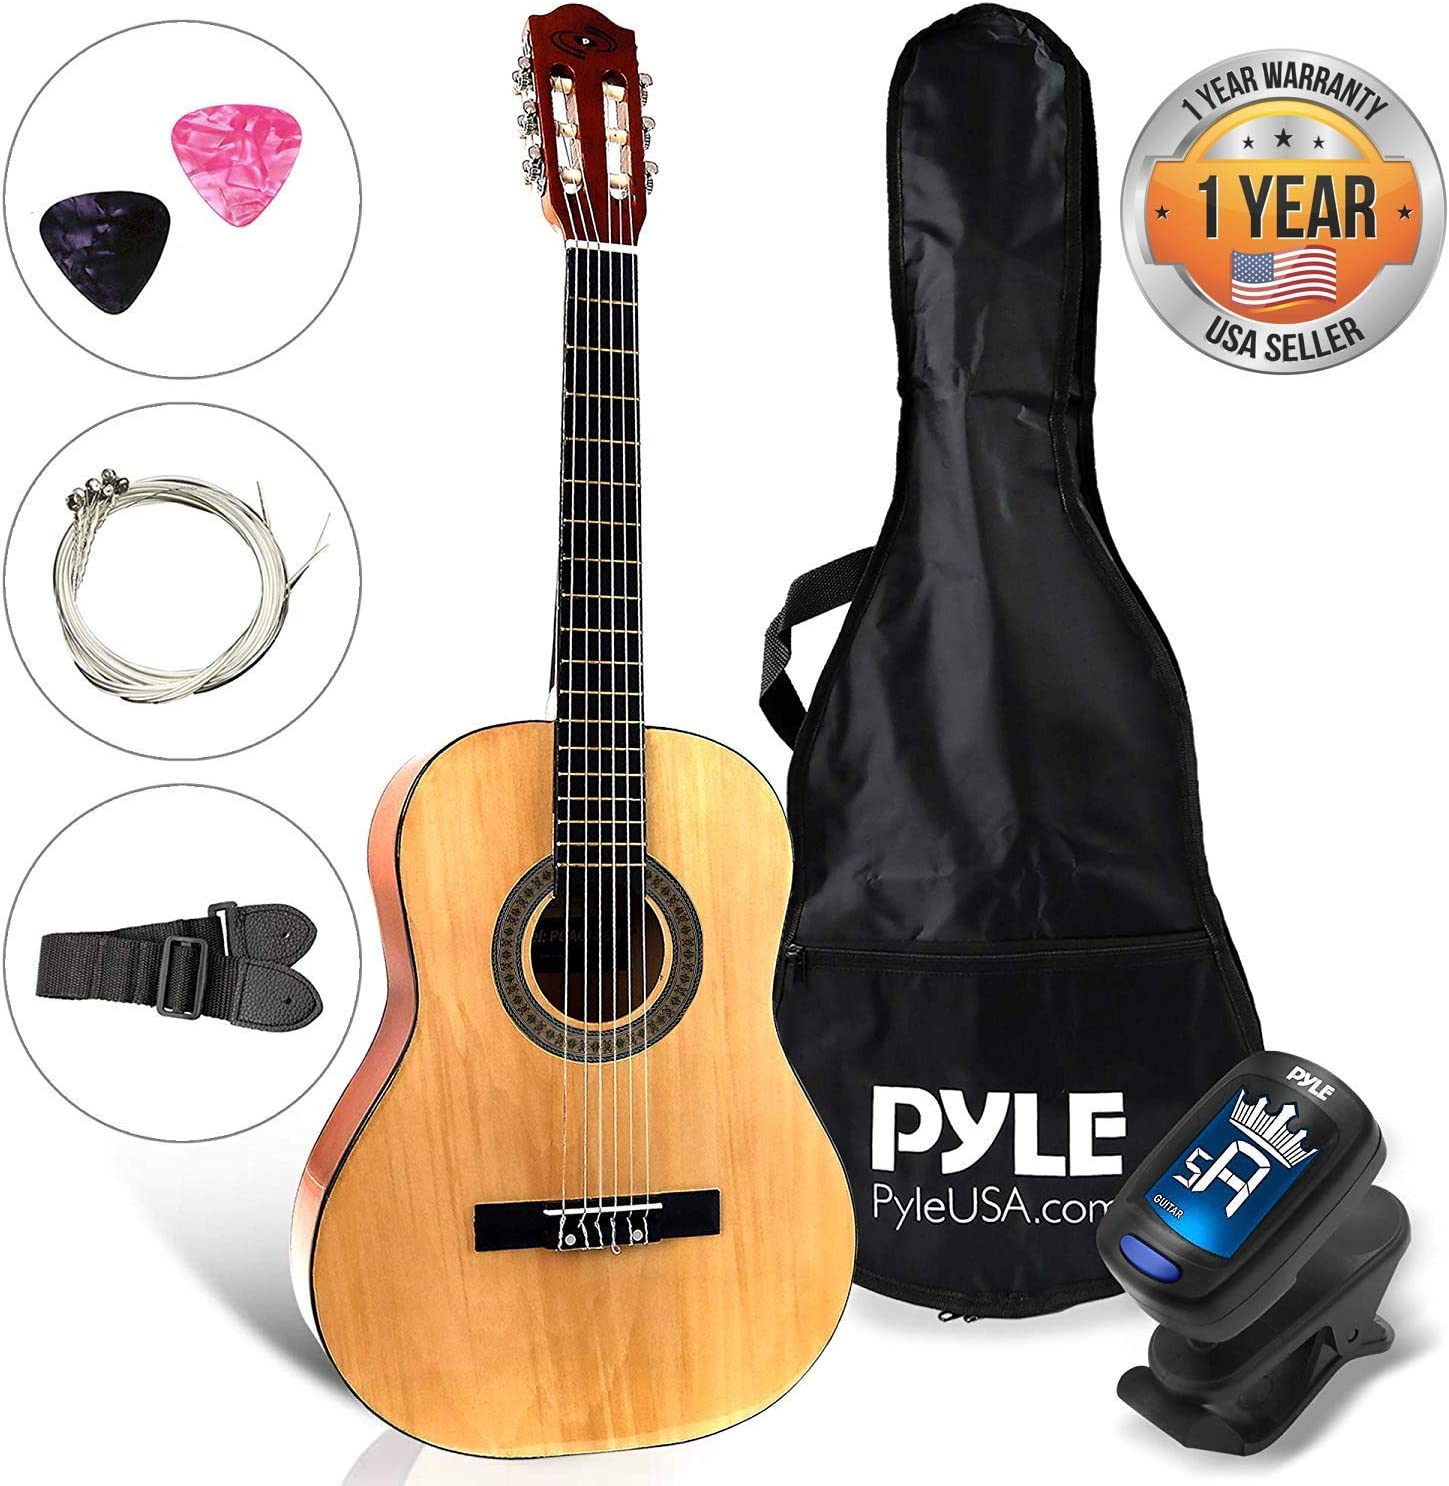 "Beginner 30"" Classical Acoustic Guitar6 String Junior Linden Wood Traditional Guitar w/ Wooden Fretboard, Case Bag, Strap, Tuner, Nylon Strings, Picks, Great for Beginner, ChildrenPyle PGACLS30"